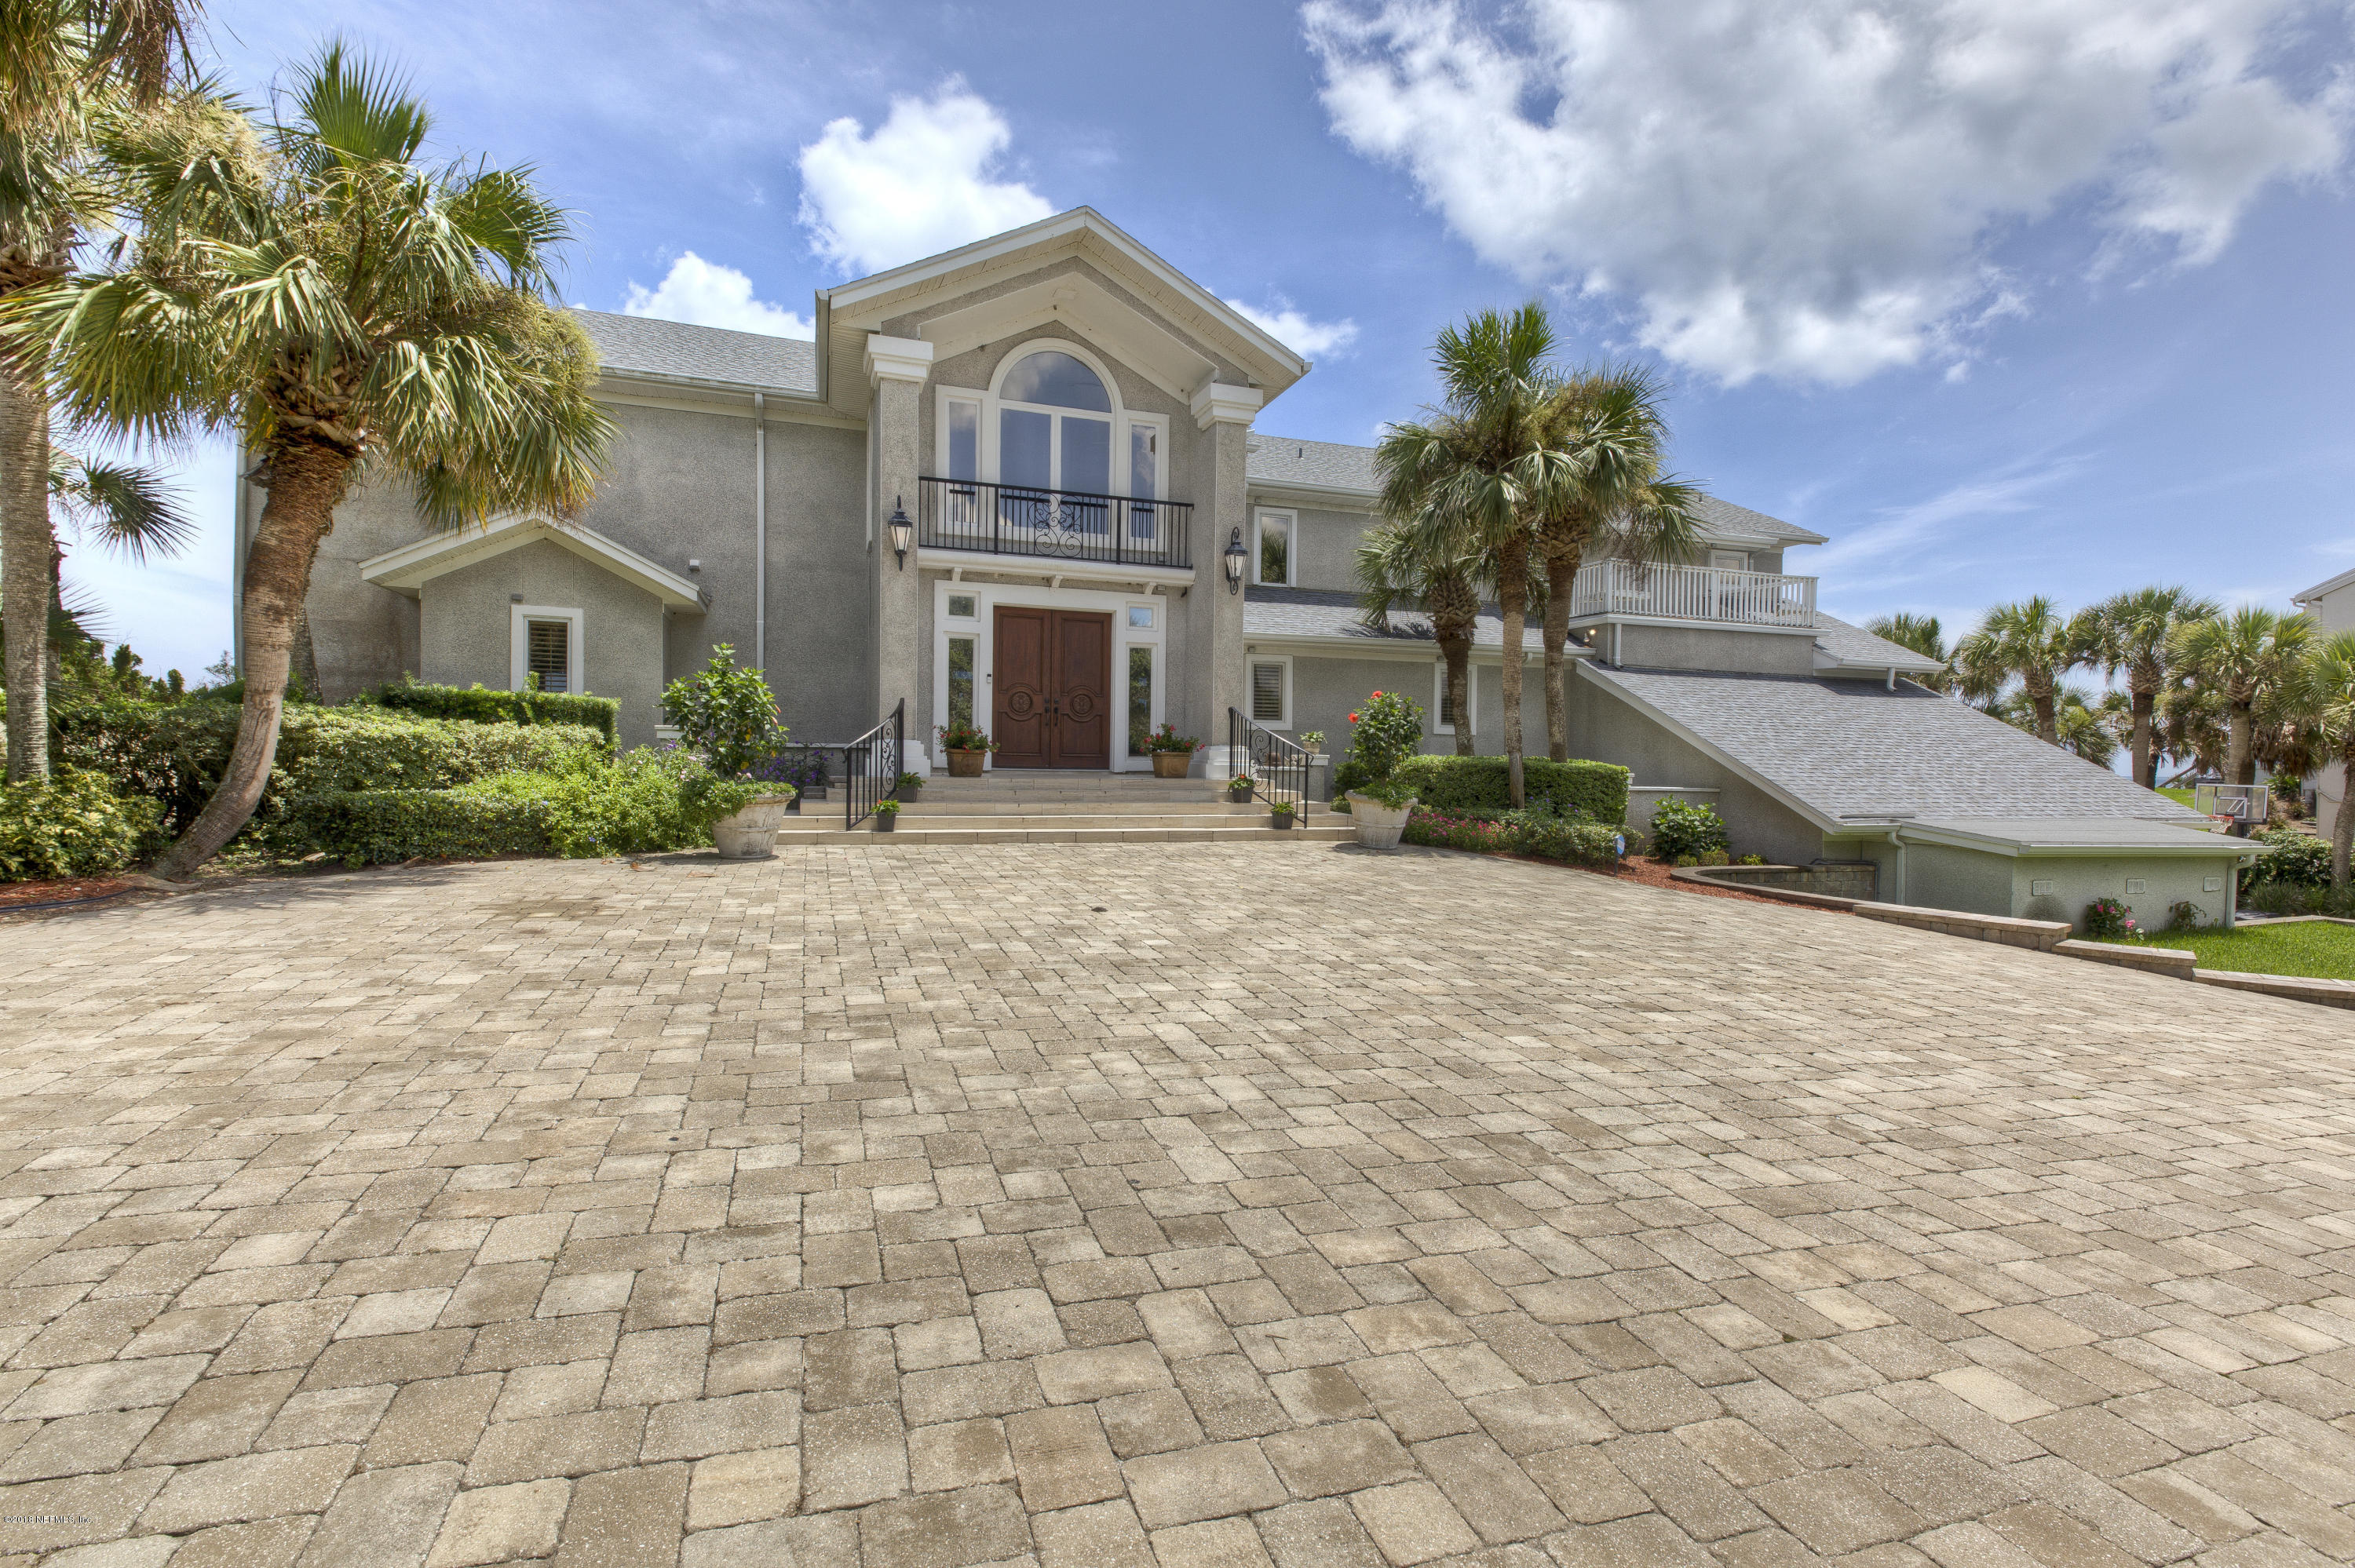 1407 PONTE VEDRA, PONTE VEDRA BEACH, FLORIDA 32082, 9 Bedrooms Bedrooms, ,8 BathroomsBathrooms,Residential - single family,For sale,PONTE VEDRA,950180